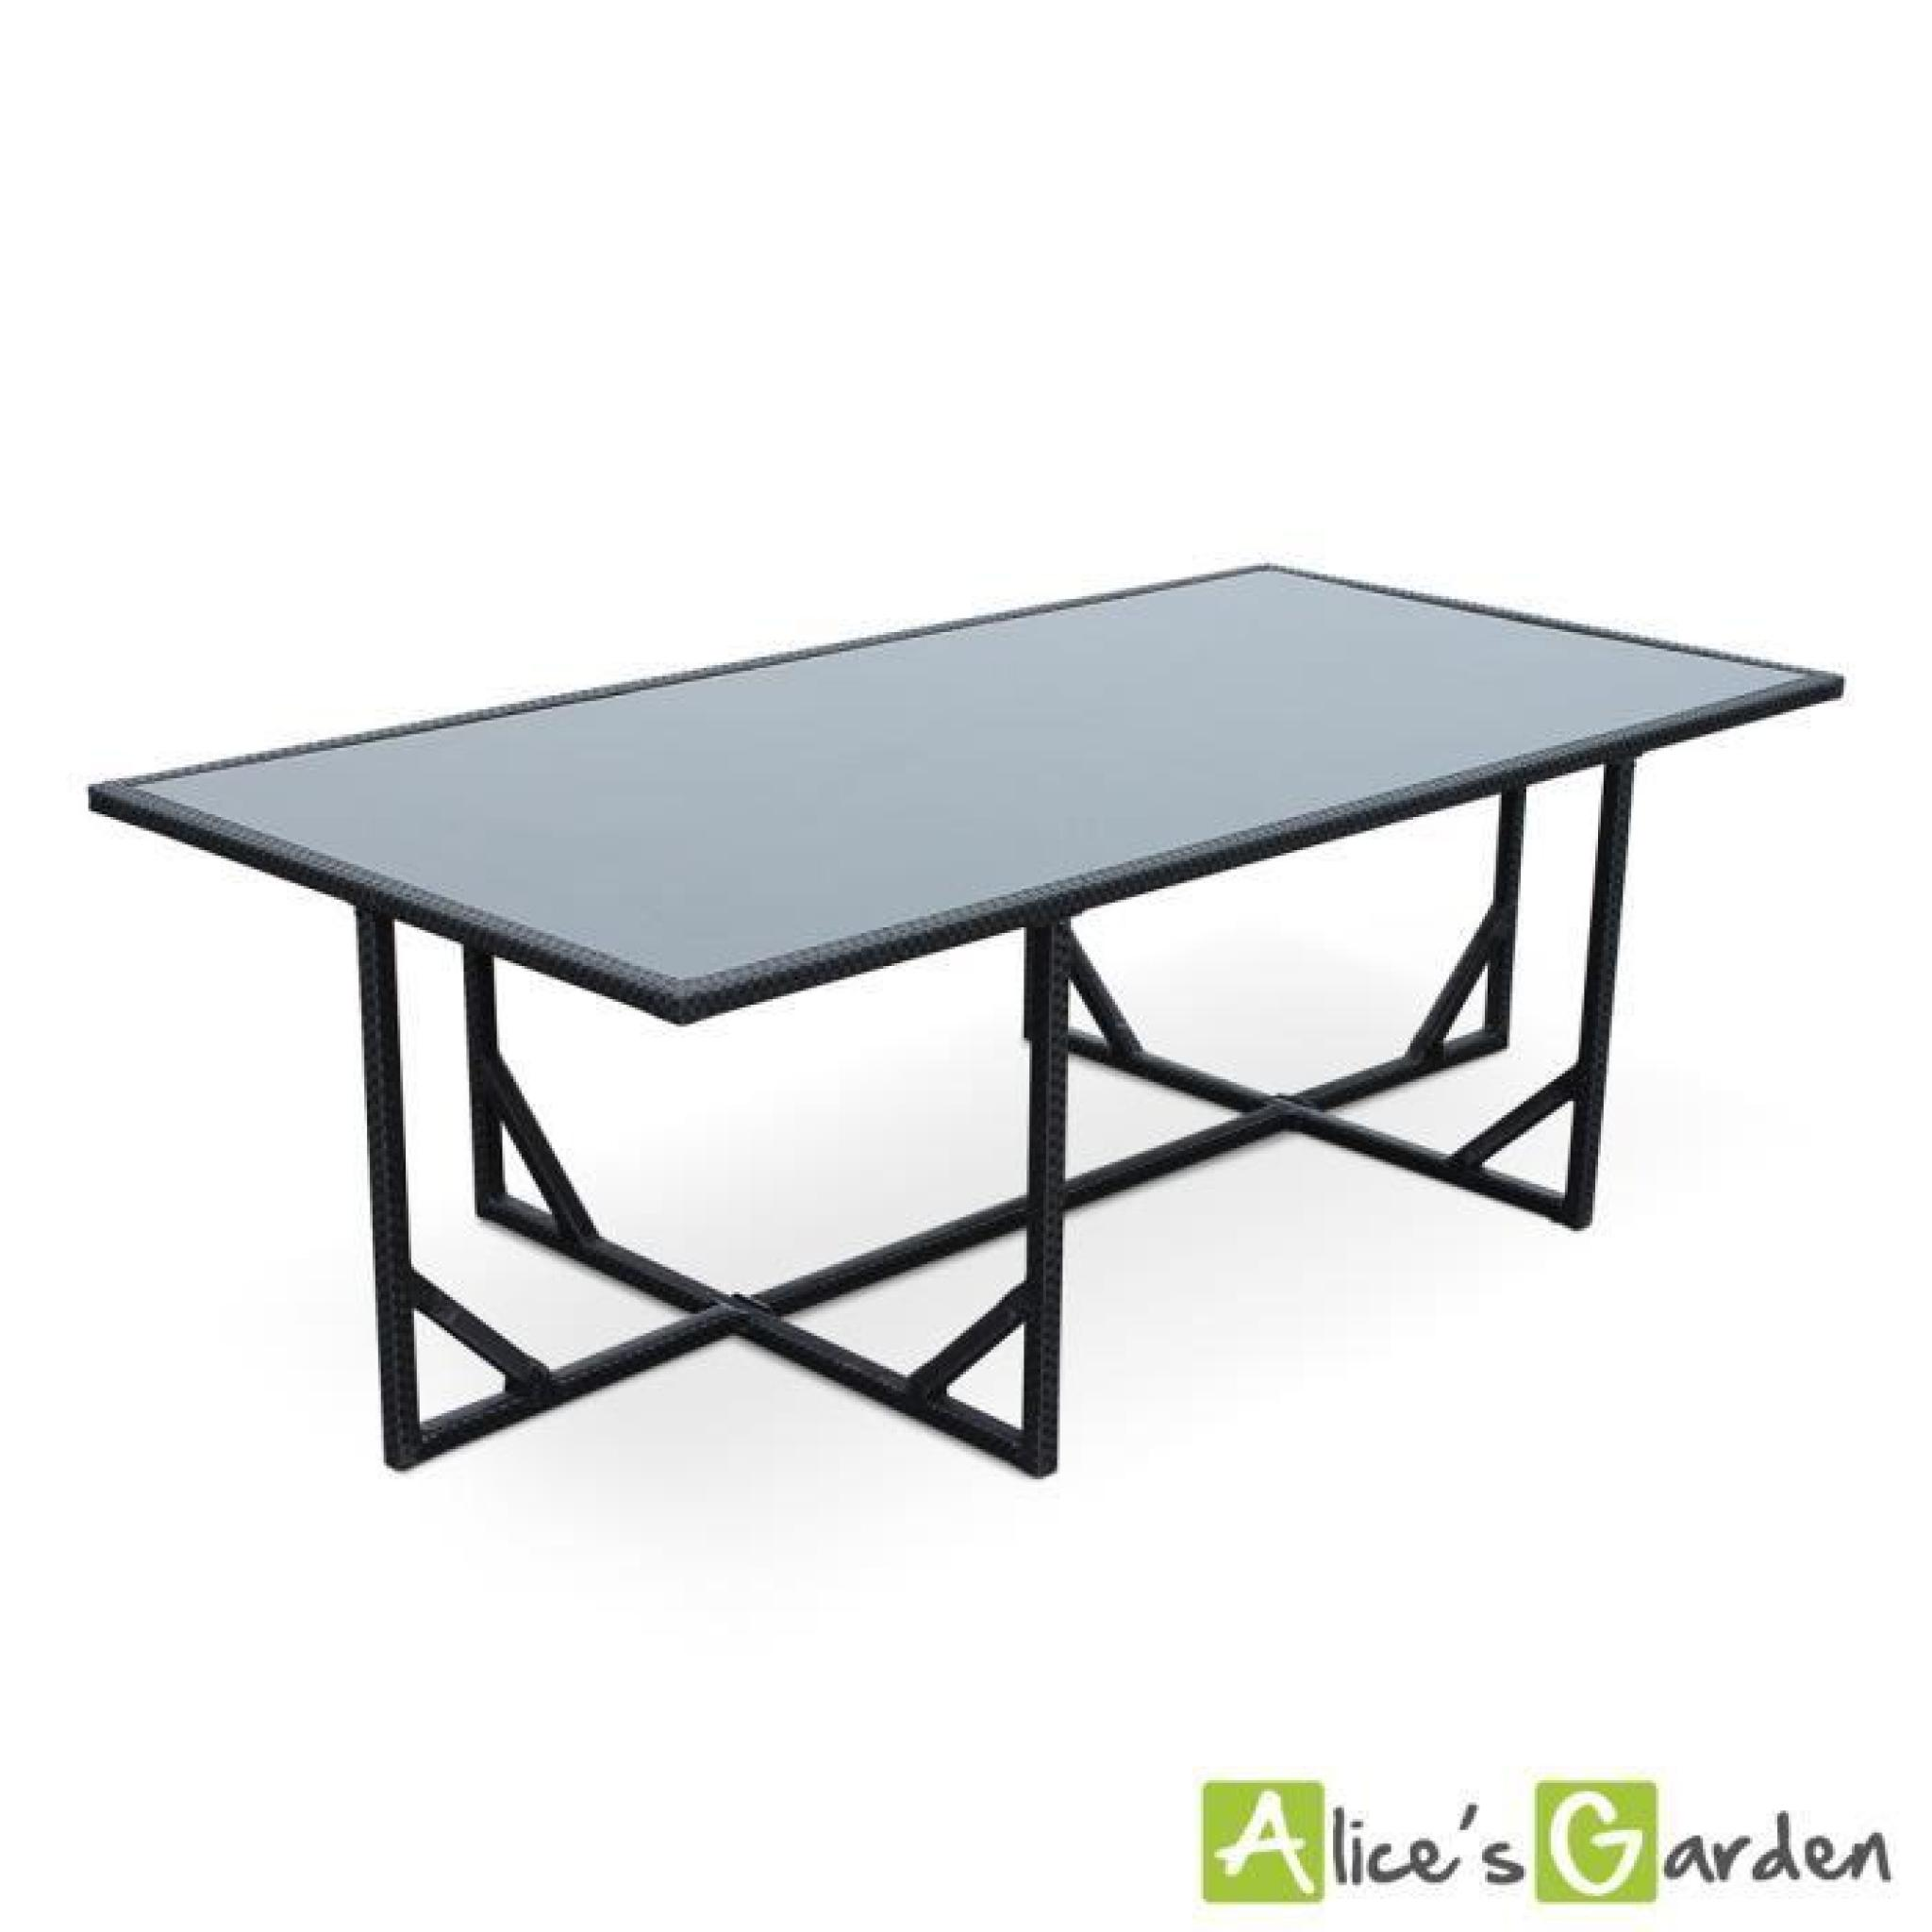 Table resine tressee maison design - Table de jardin resine tressee places dijon ...